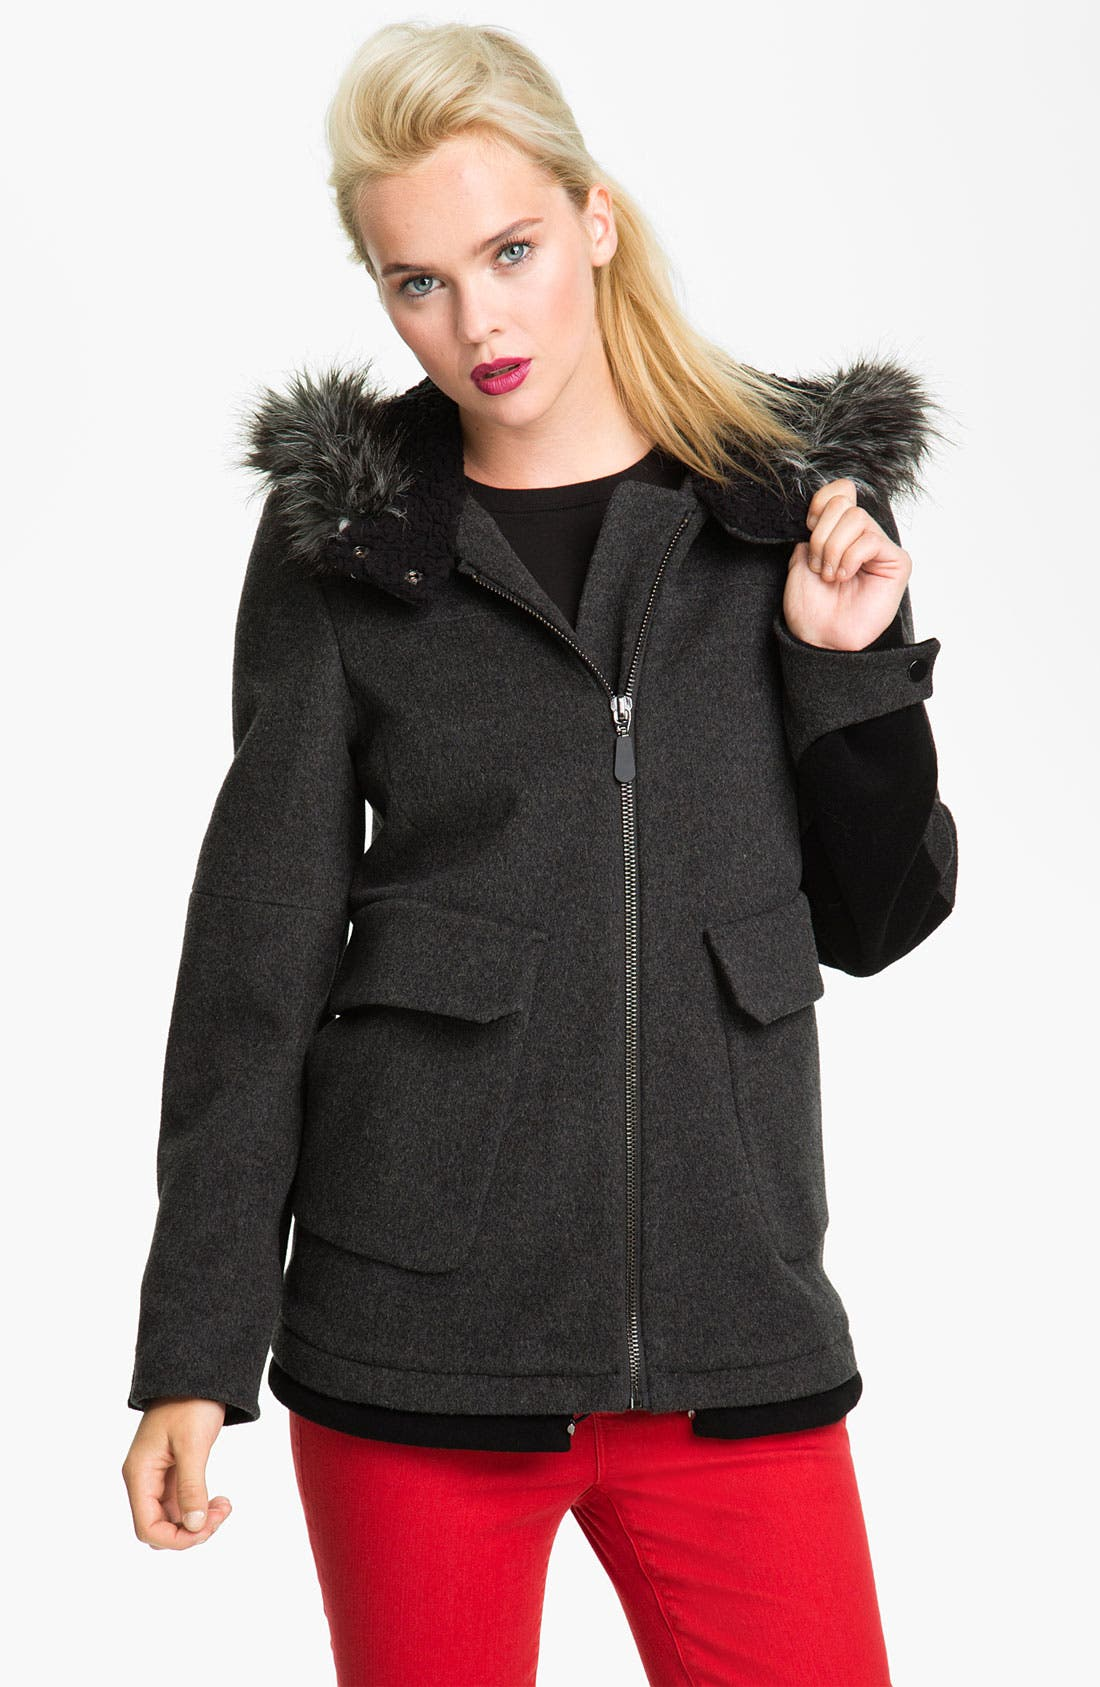 Alternate Image 1 Selected - Kristen Blake Wool Blend Jacket with Faux Fur Trim